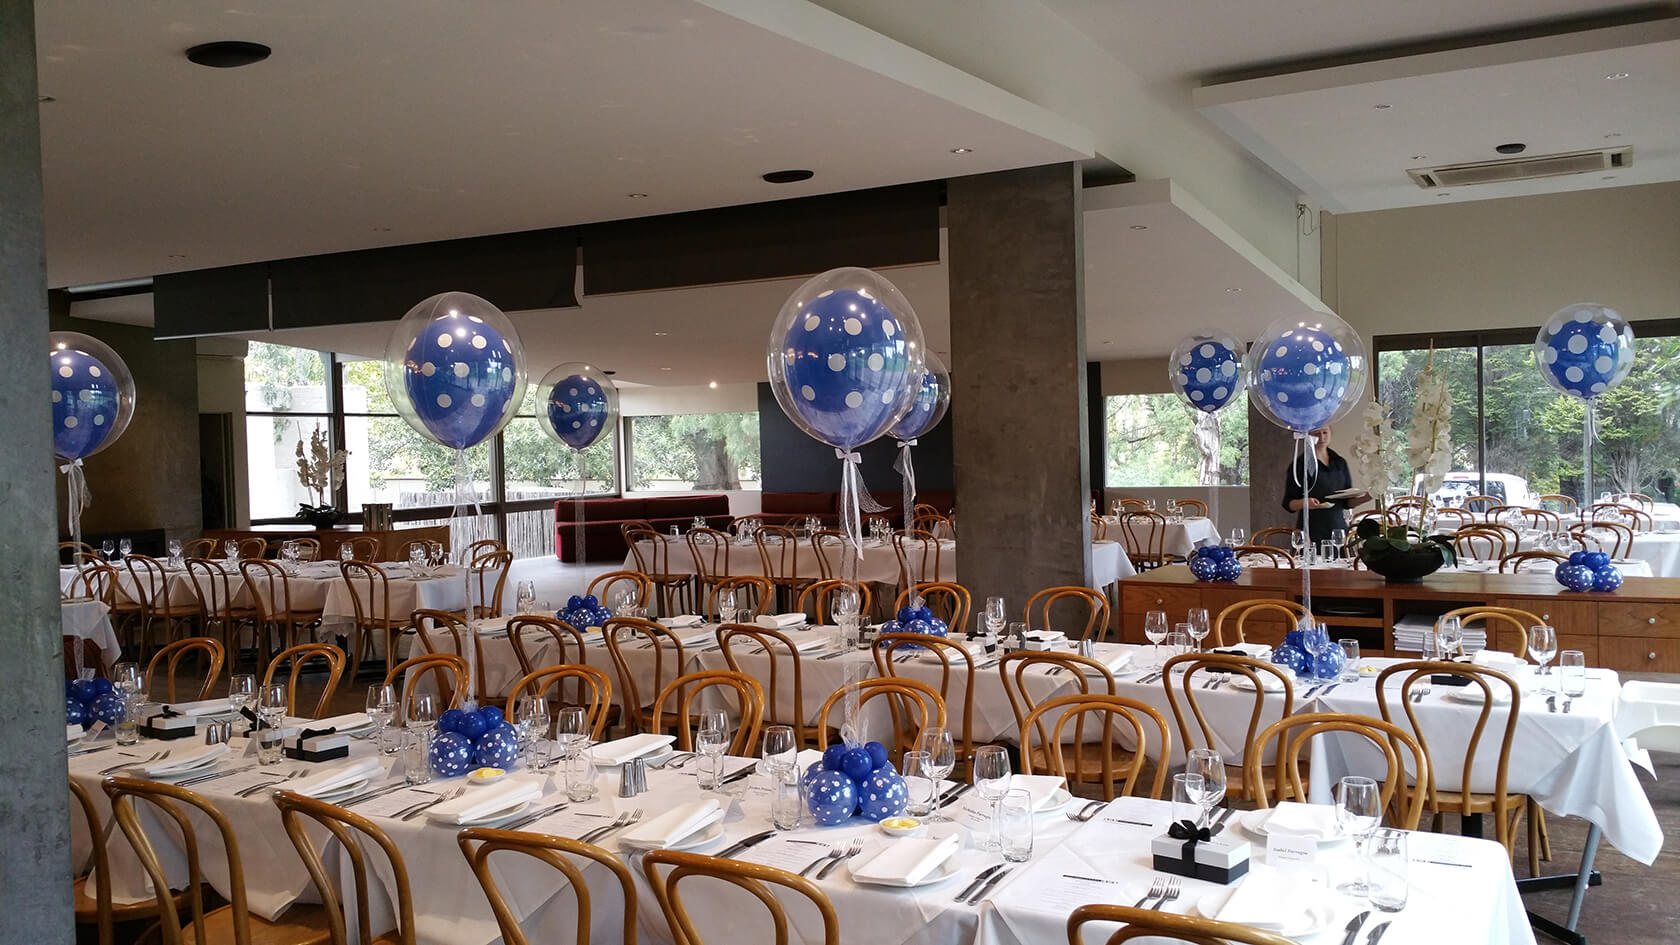 wedding balloons - see our events - special event Balloons Coburg North - shivoo balloons and decor specialists in coburg north